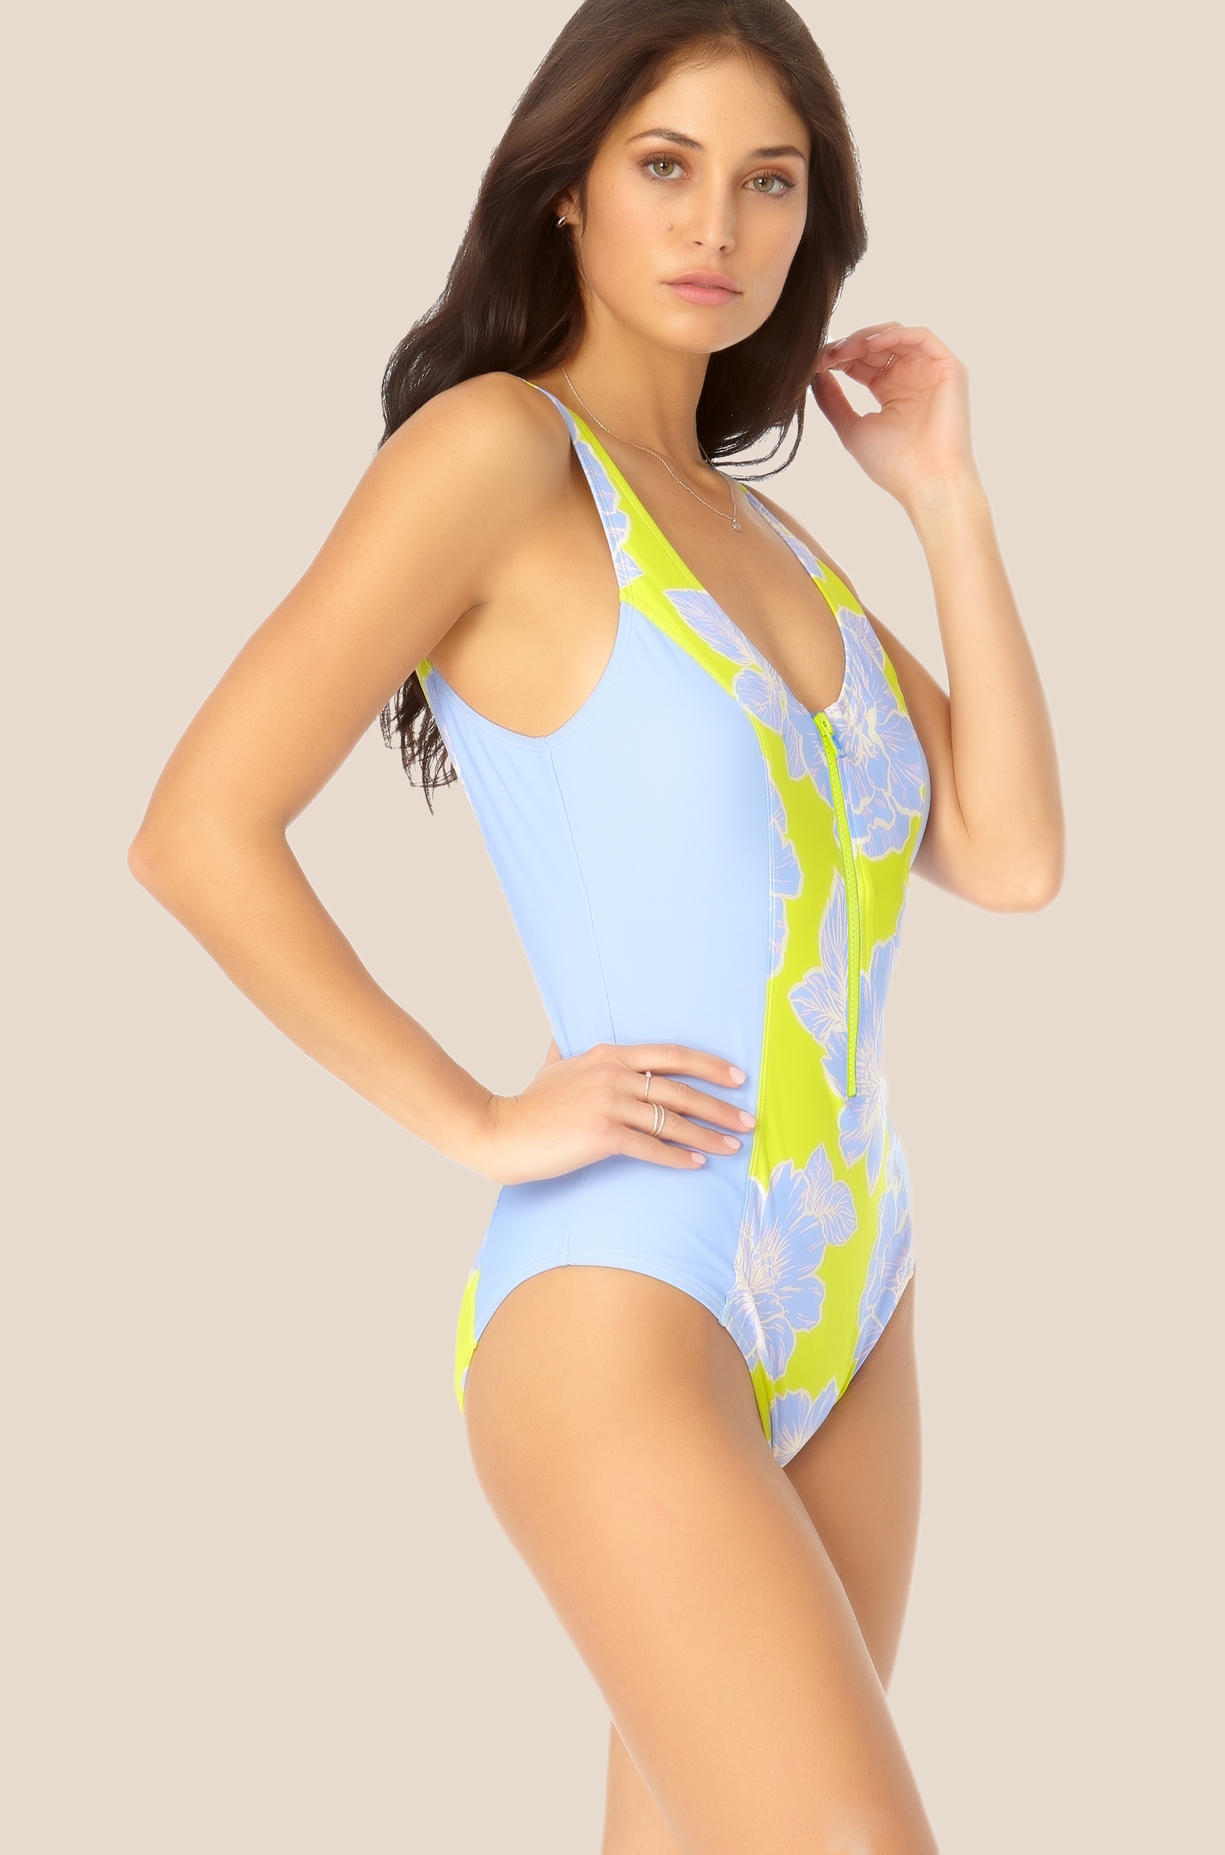 Catalina - V Neck Zip Up One Piece Swimsuit